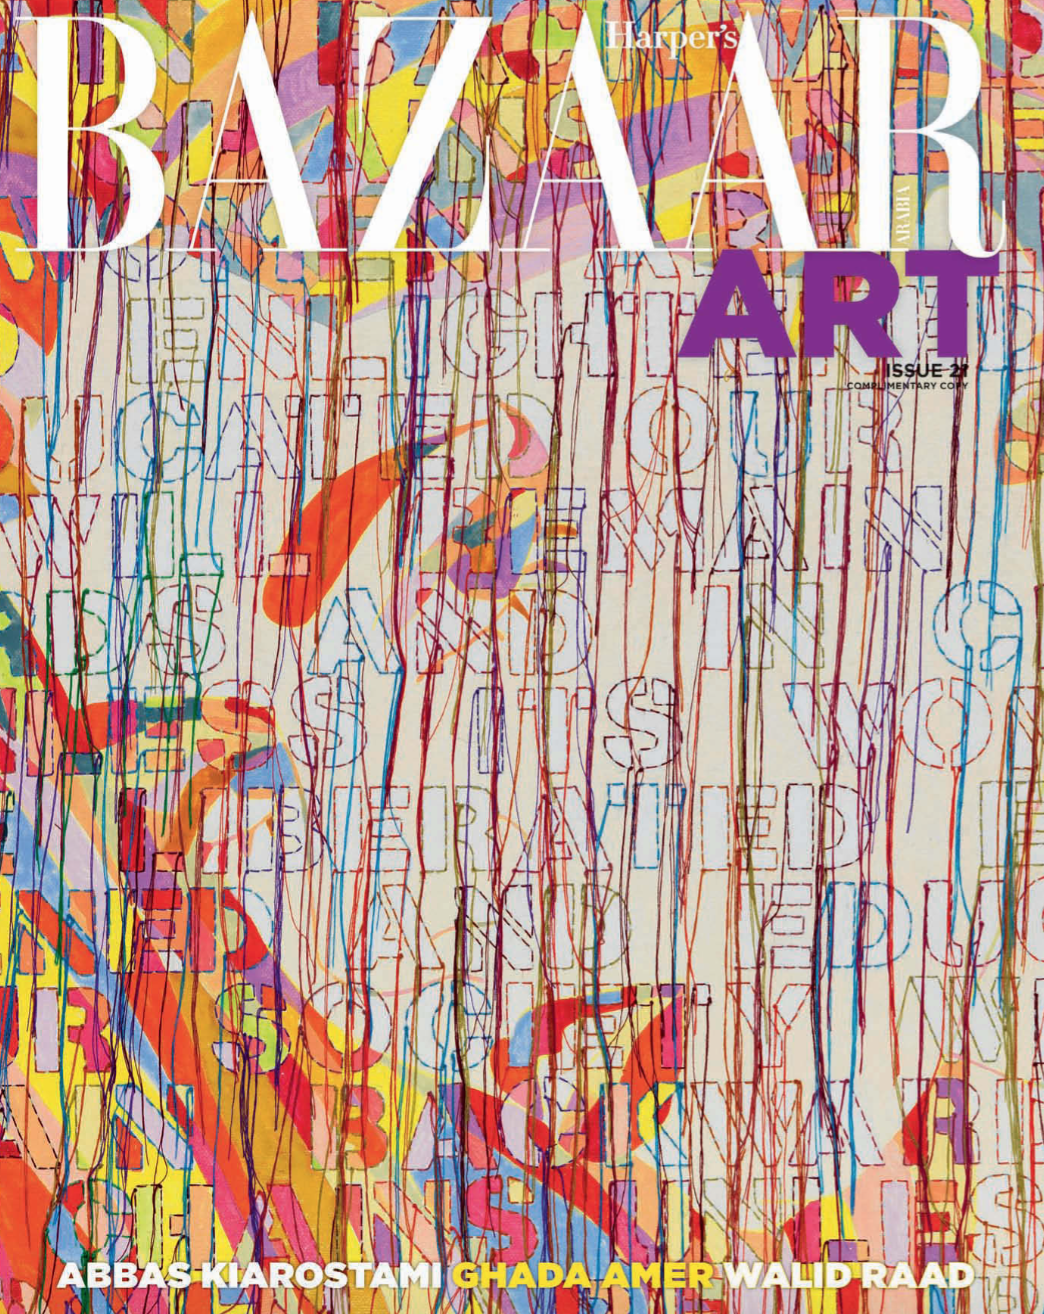 Harper's Bazaar Art Arabia Winter 2015-2016 issue